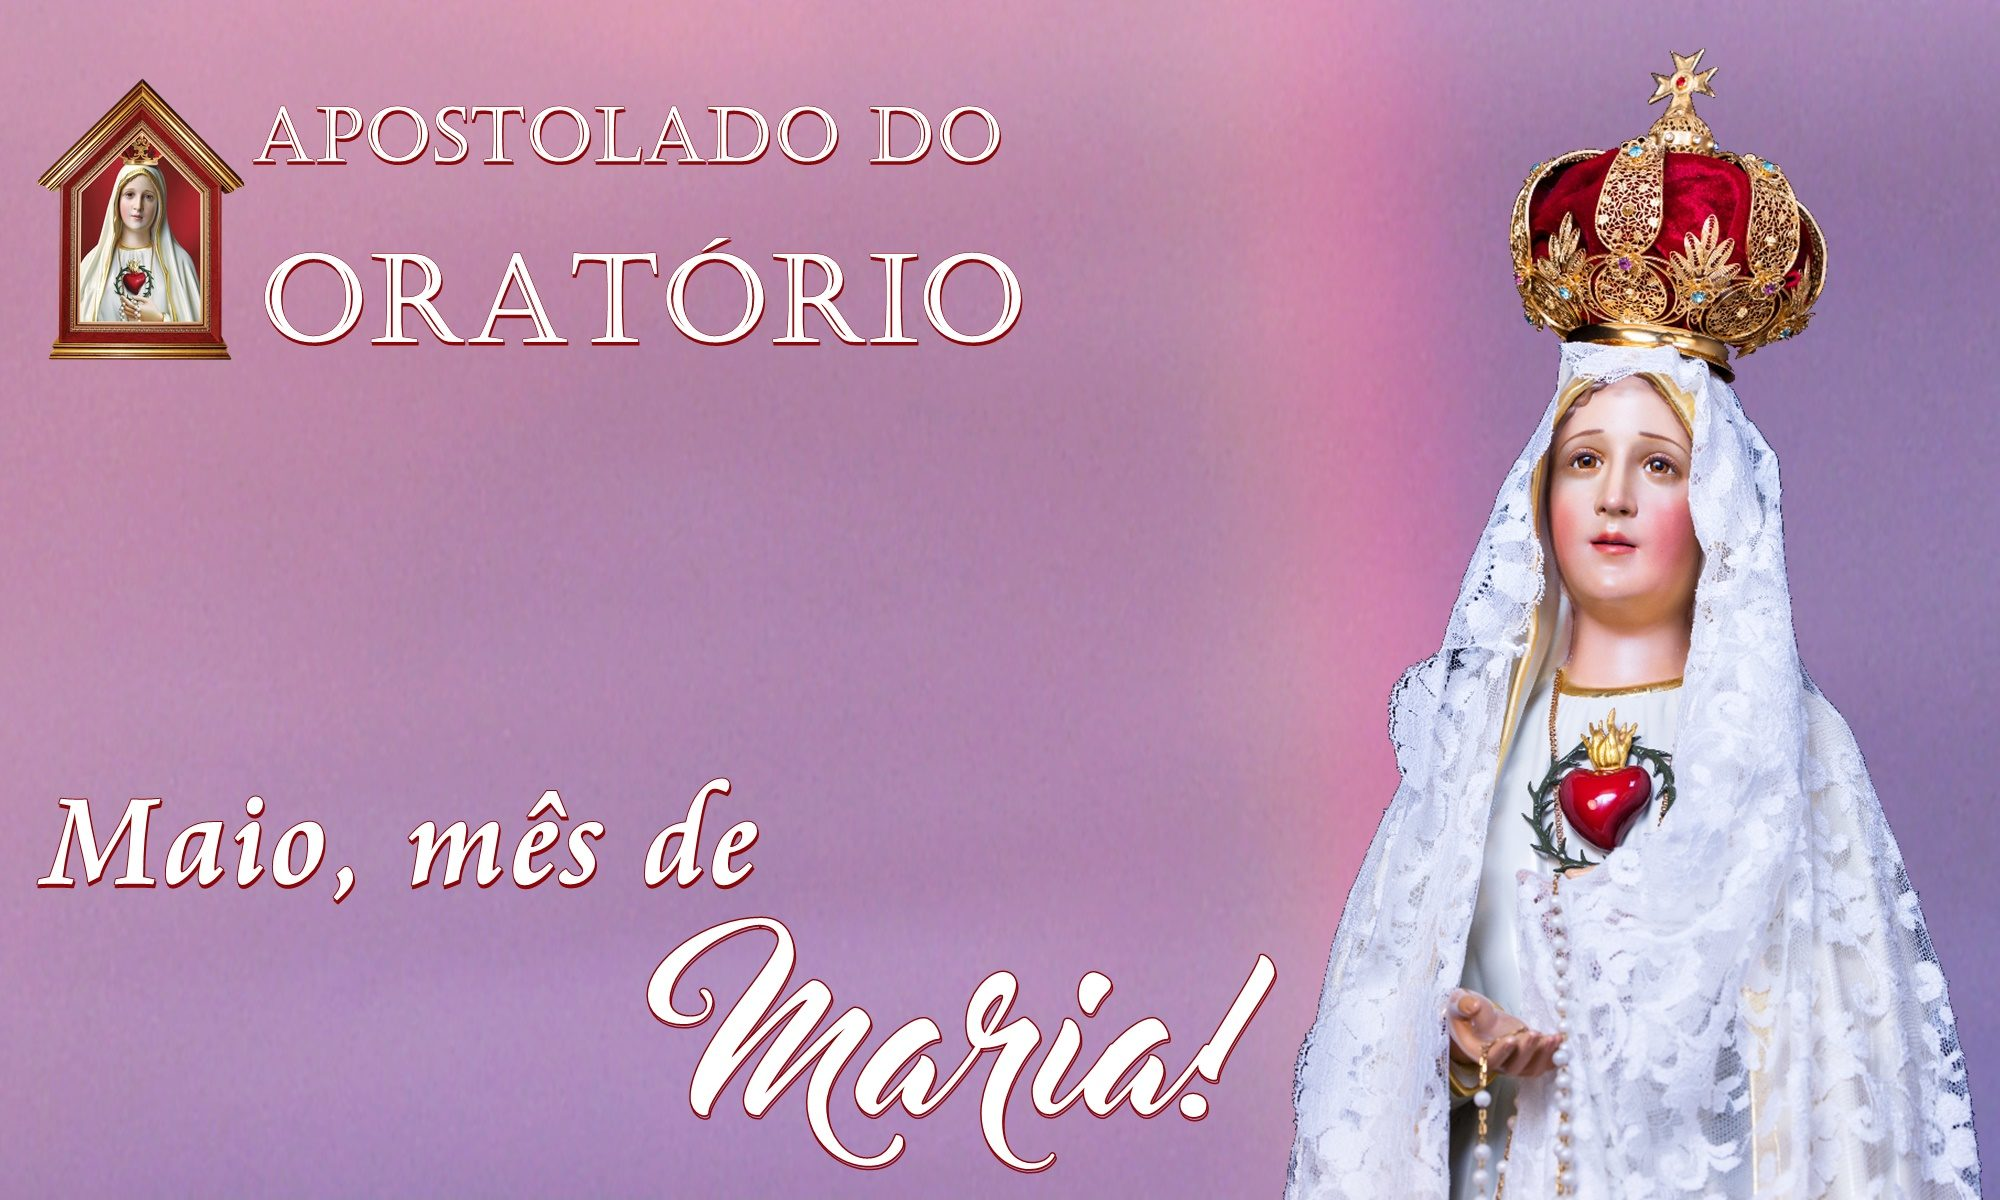 Apostolado do Oratório